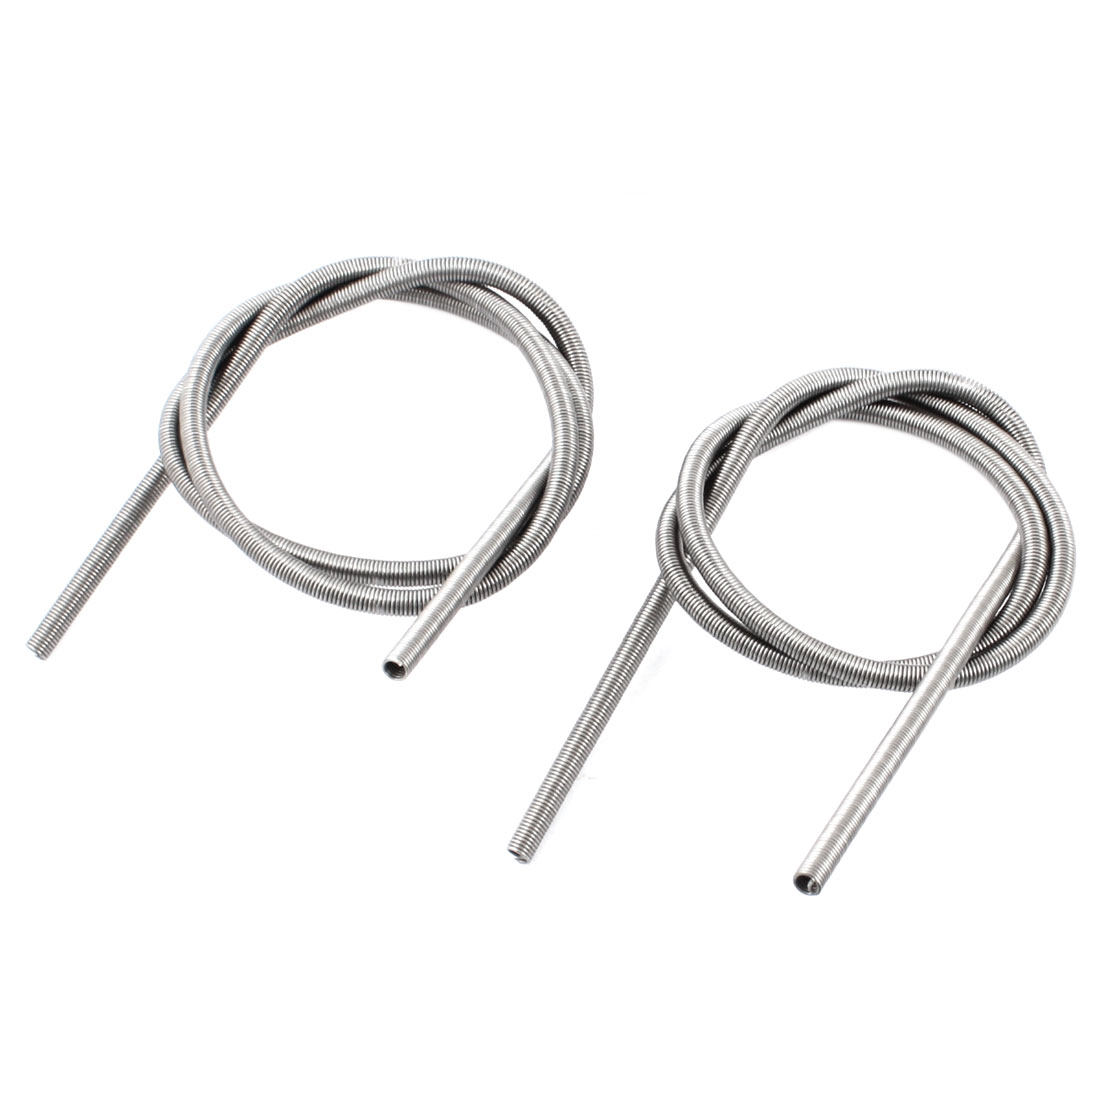 2 Pcs 665x5mm Forging Pottery Heating Heater Element Wire Coil 2KW AC220V